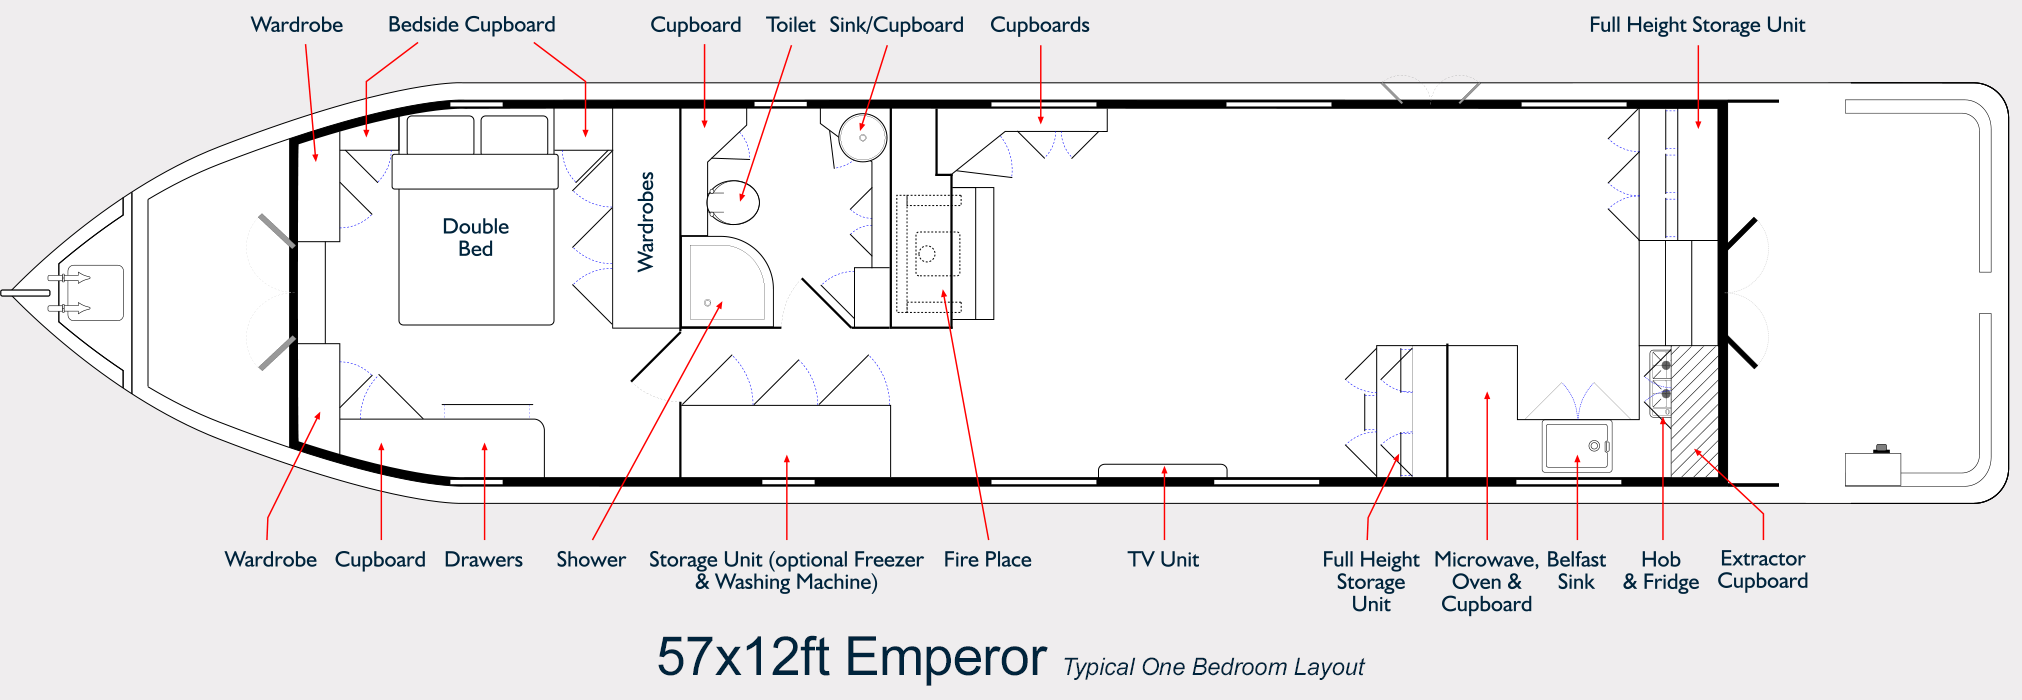 Hanbury Range Emperor Widebeam - Boat Builder Layout Plans 57ft x 12ft